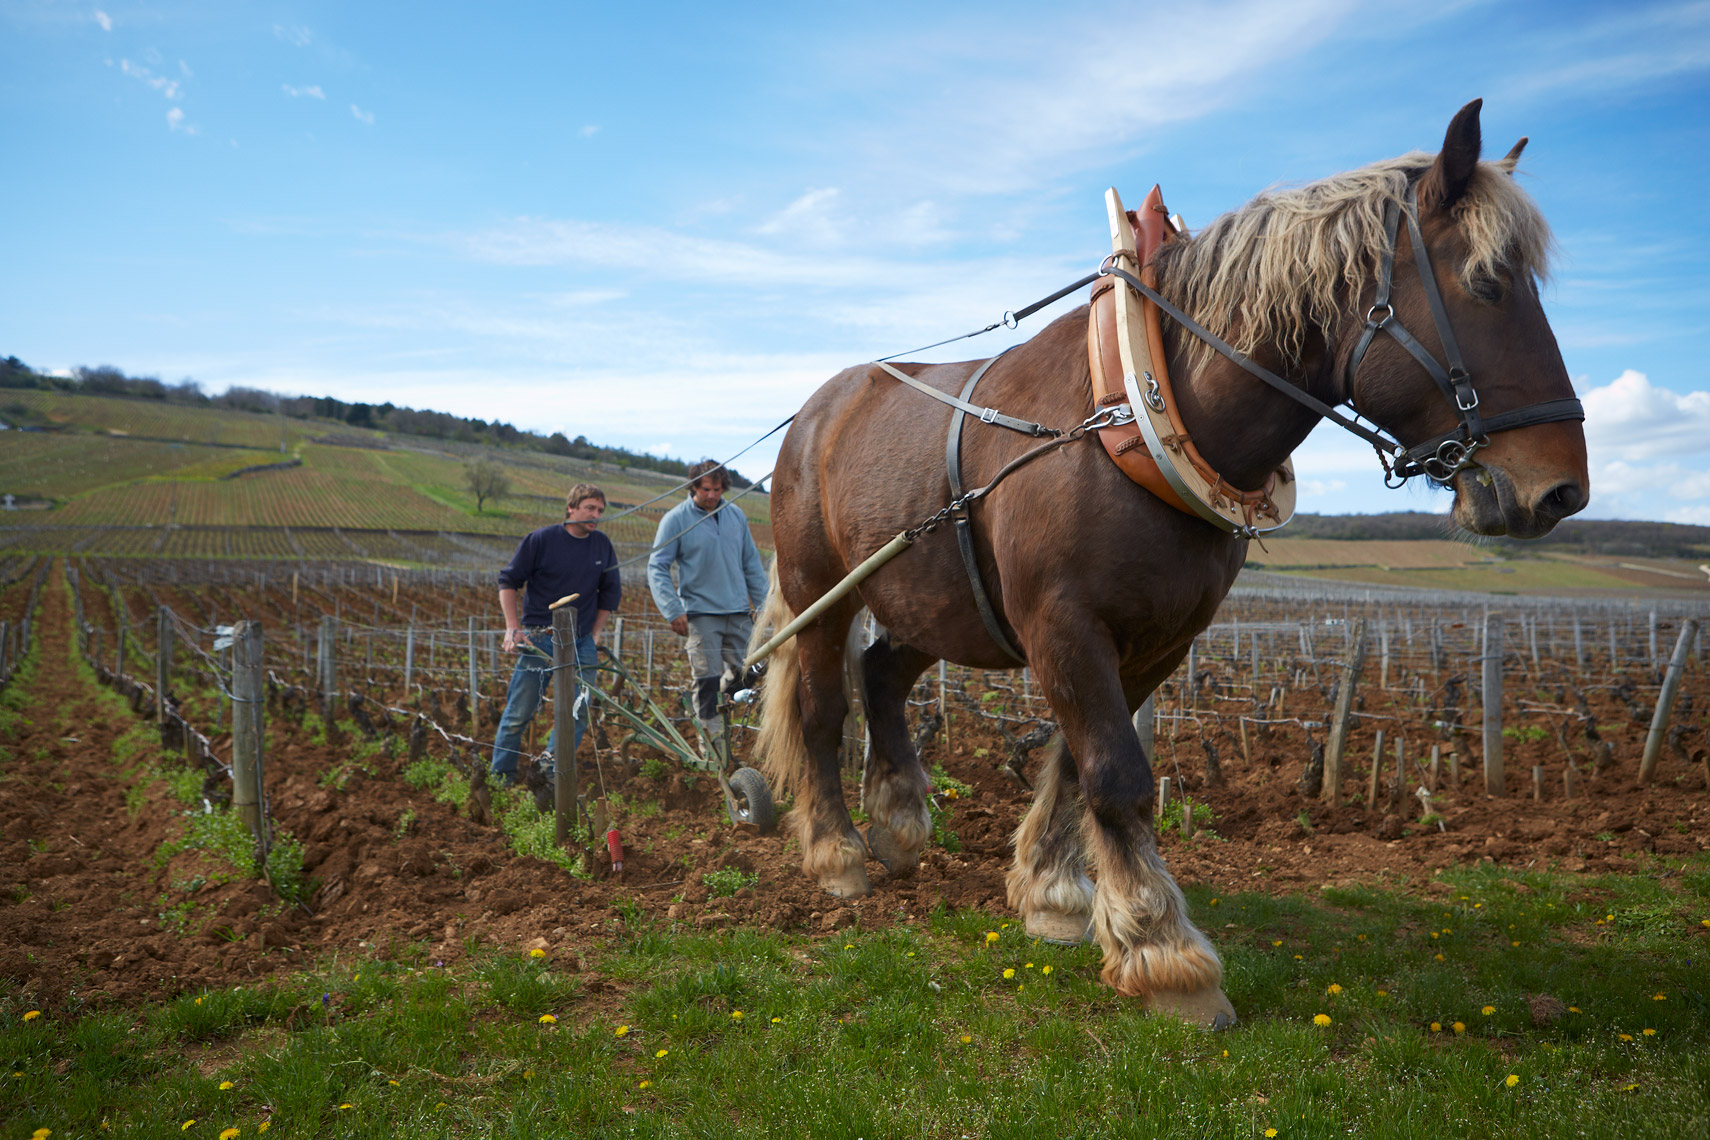 AlanCampbellPhotography, Horse-Plowing-Romanee-Conti